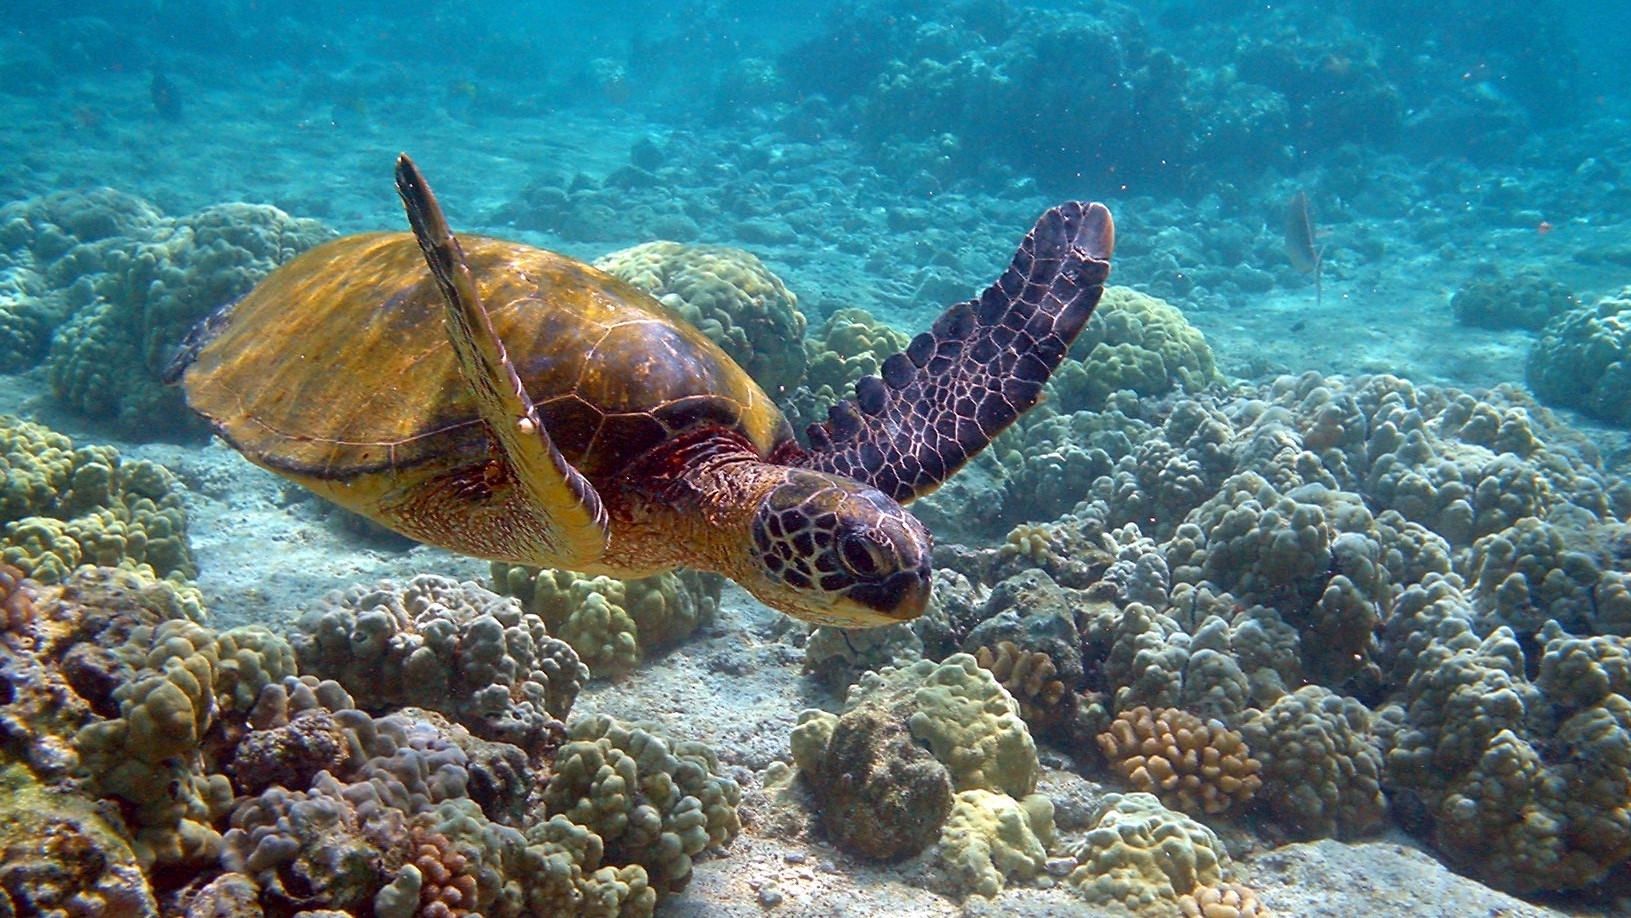 Image: Green sea turtle swimming